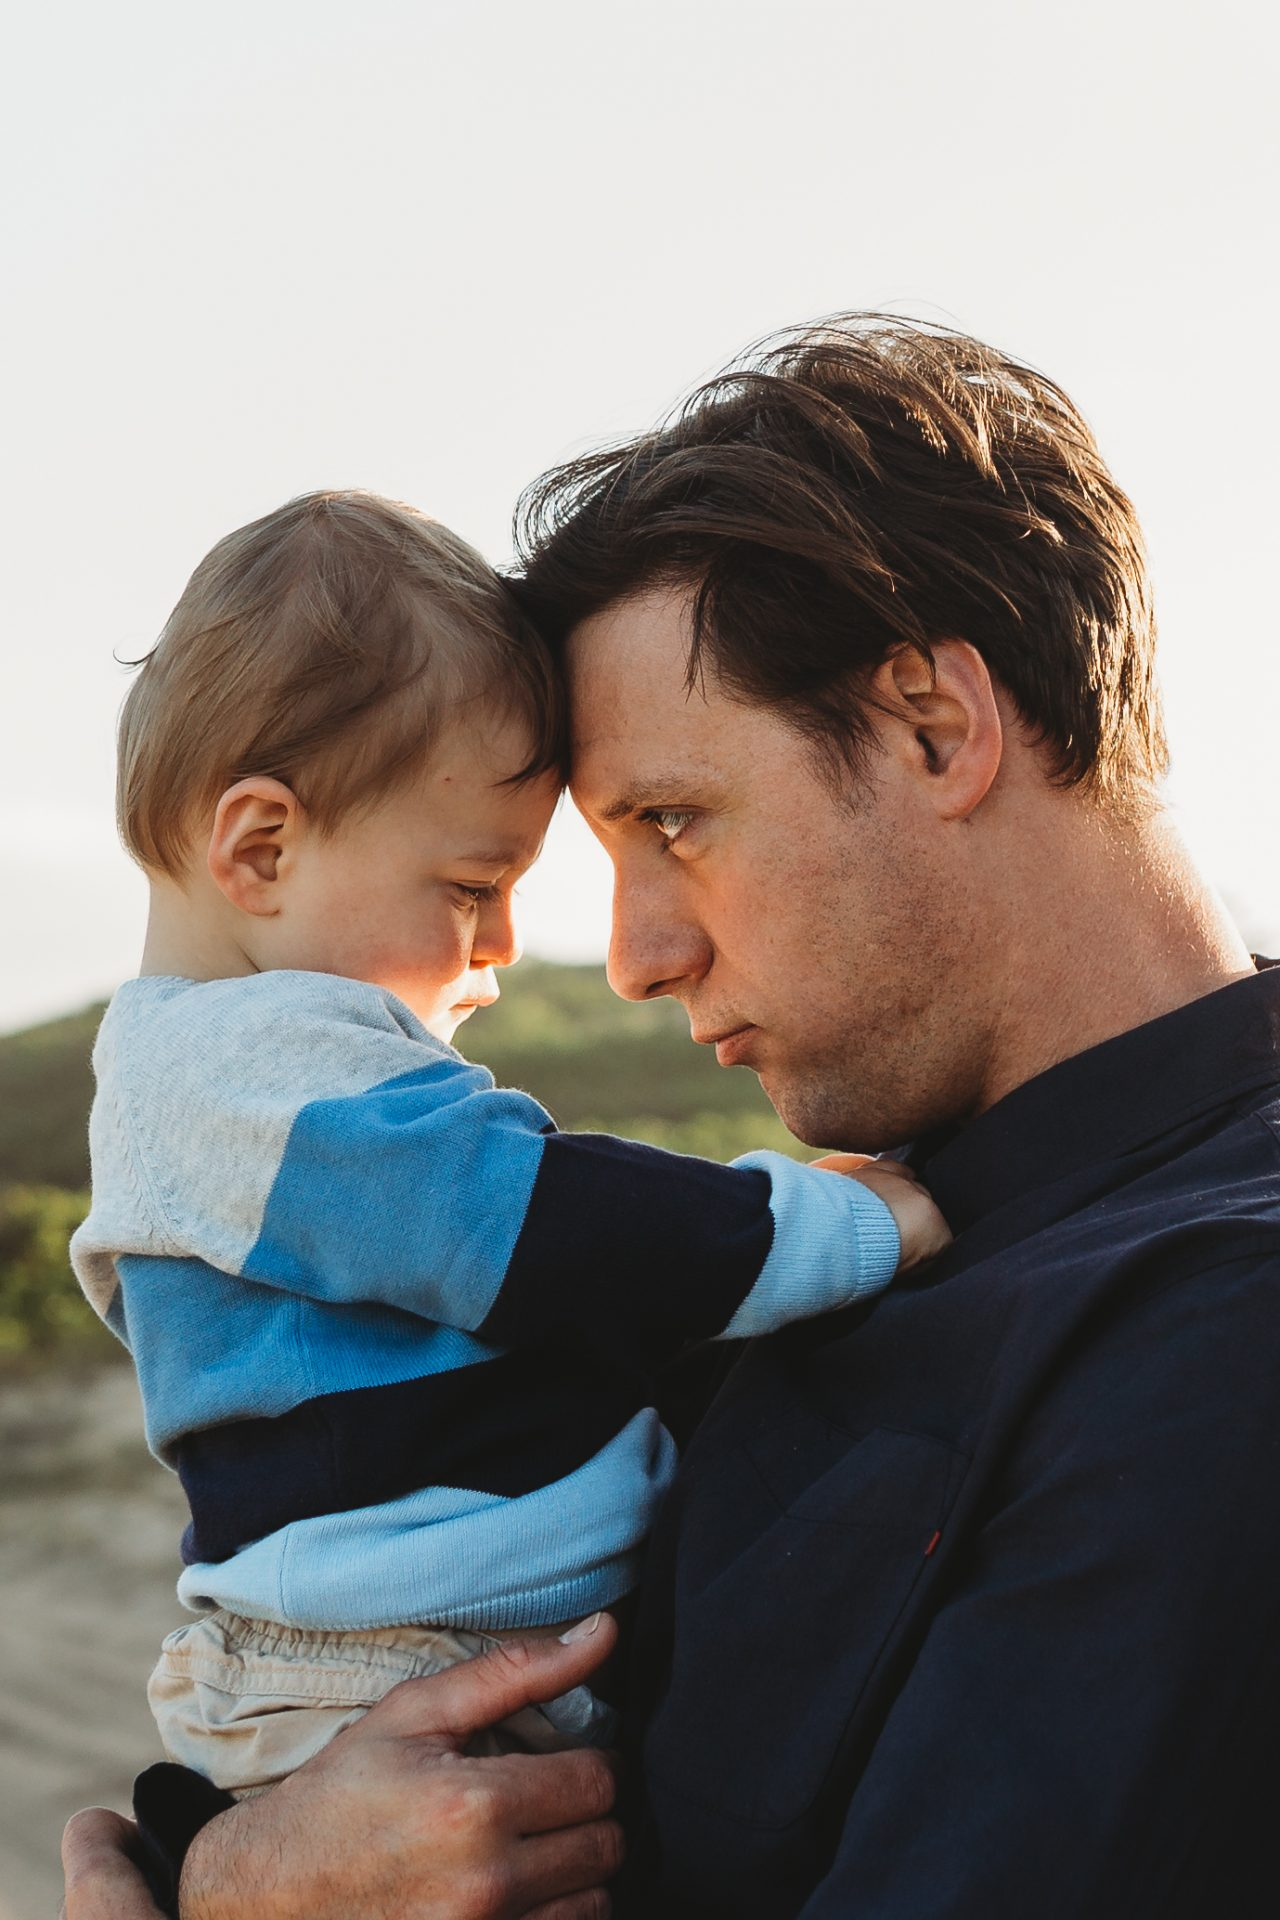 Father and toddler touching foreheads with father imitating toddler's pout